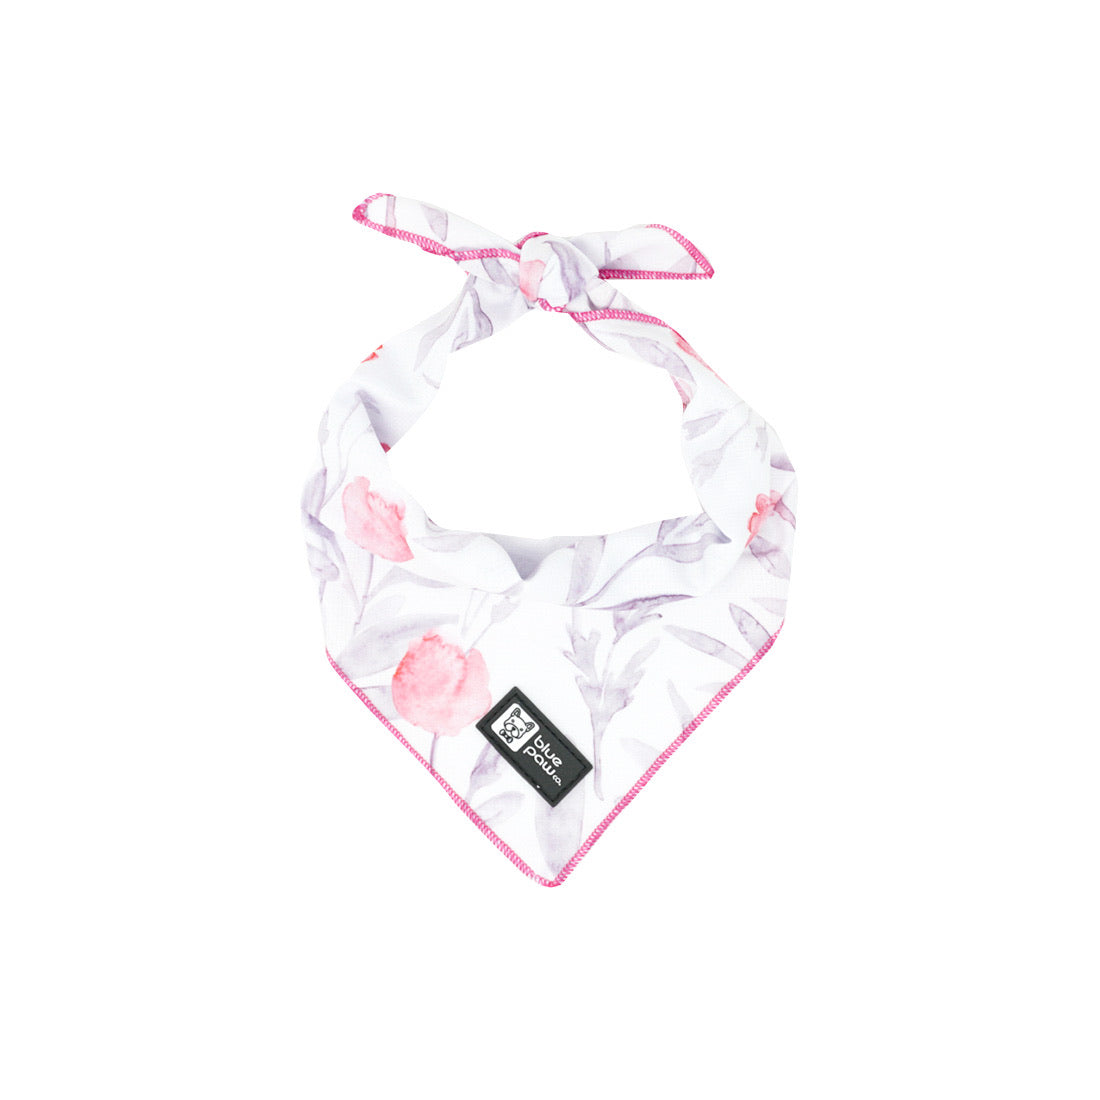 Cooling Dog Bandana - Fleur (Final Sale)